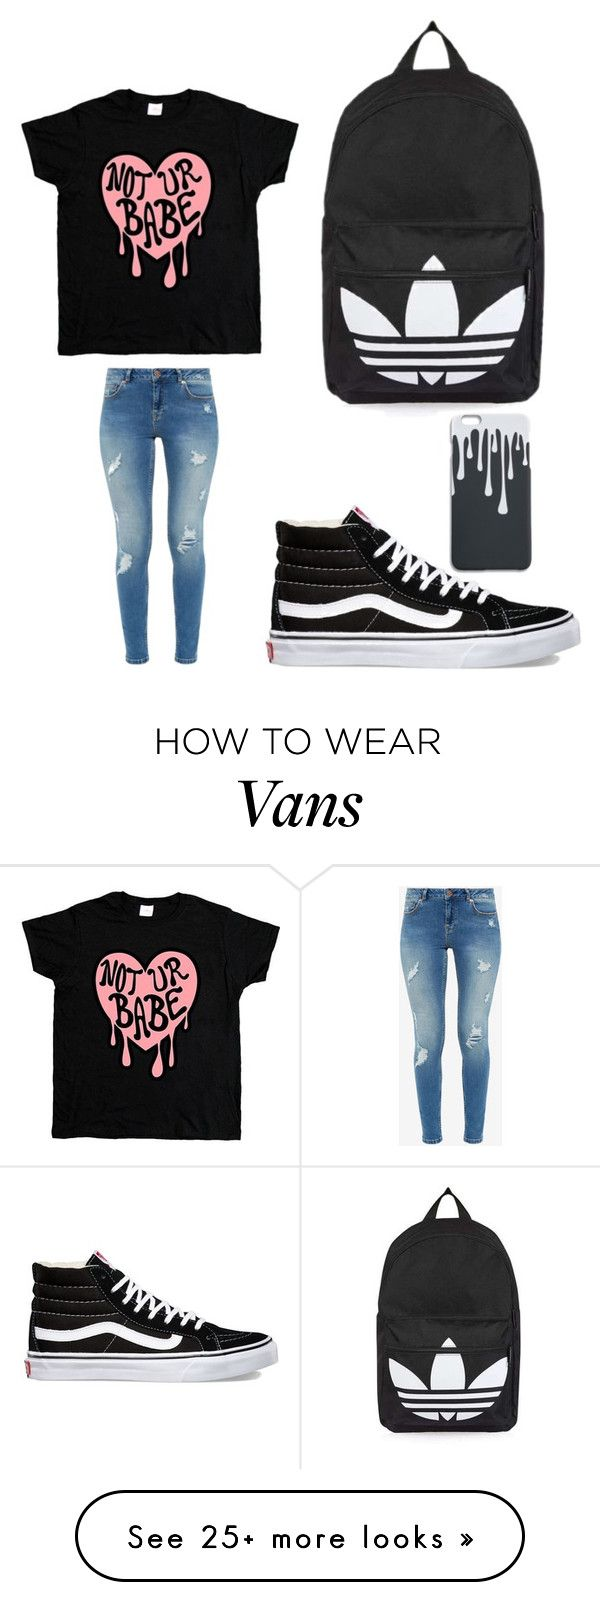 """""""Tomboy school outfit"""" by lswaine on Polyvore featuring Ted Baker, Vans and Topshop"""